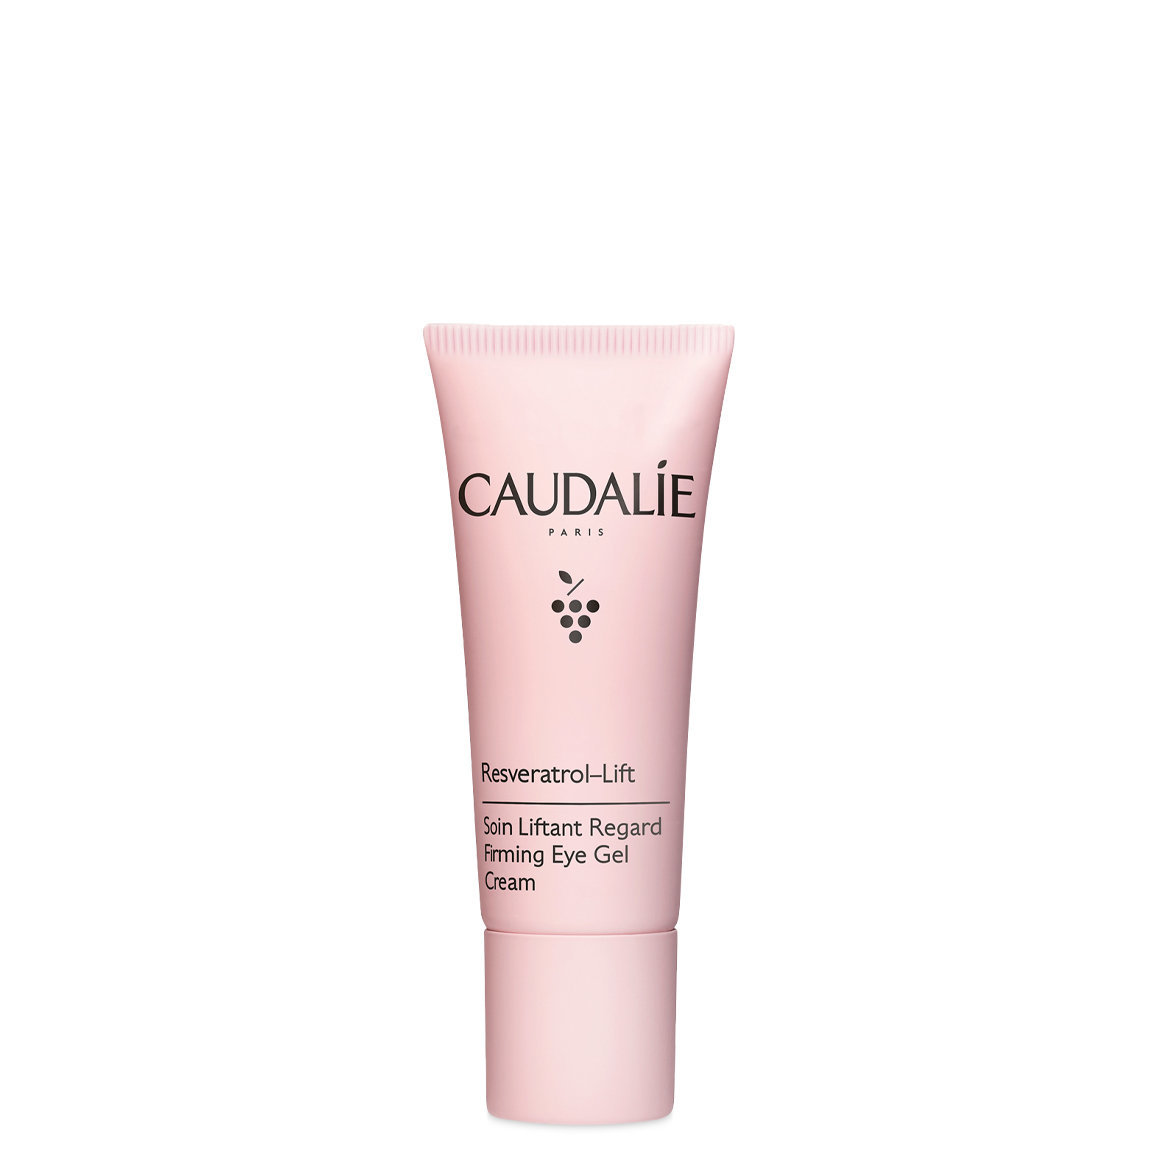 Caudalie Resveratrol-Lift Firming Eye Gel Cream alternative view 1 - product swatch.